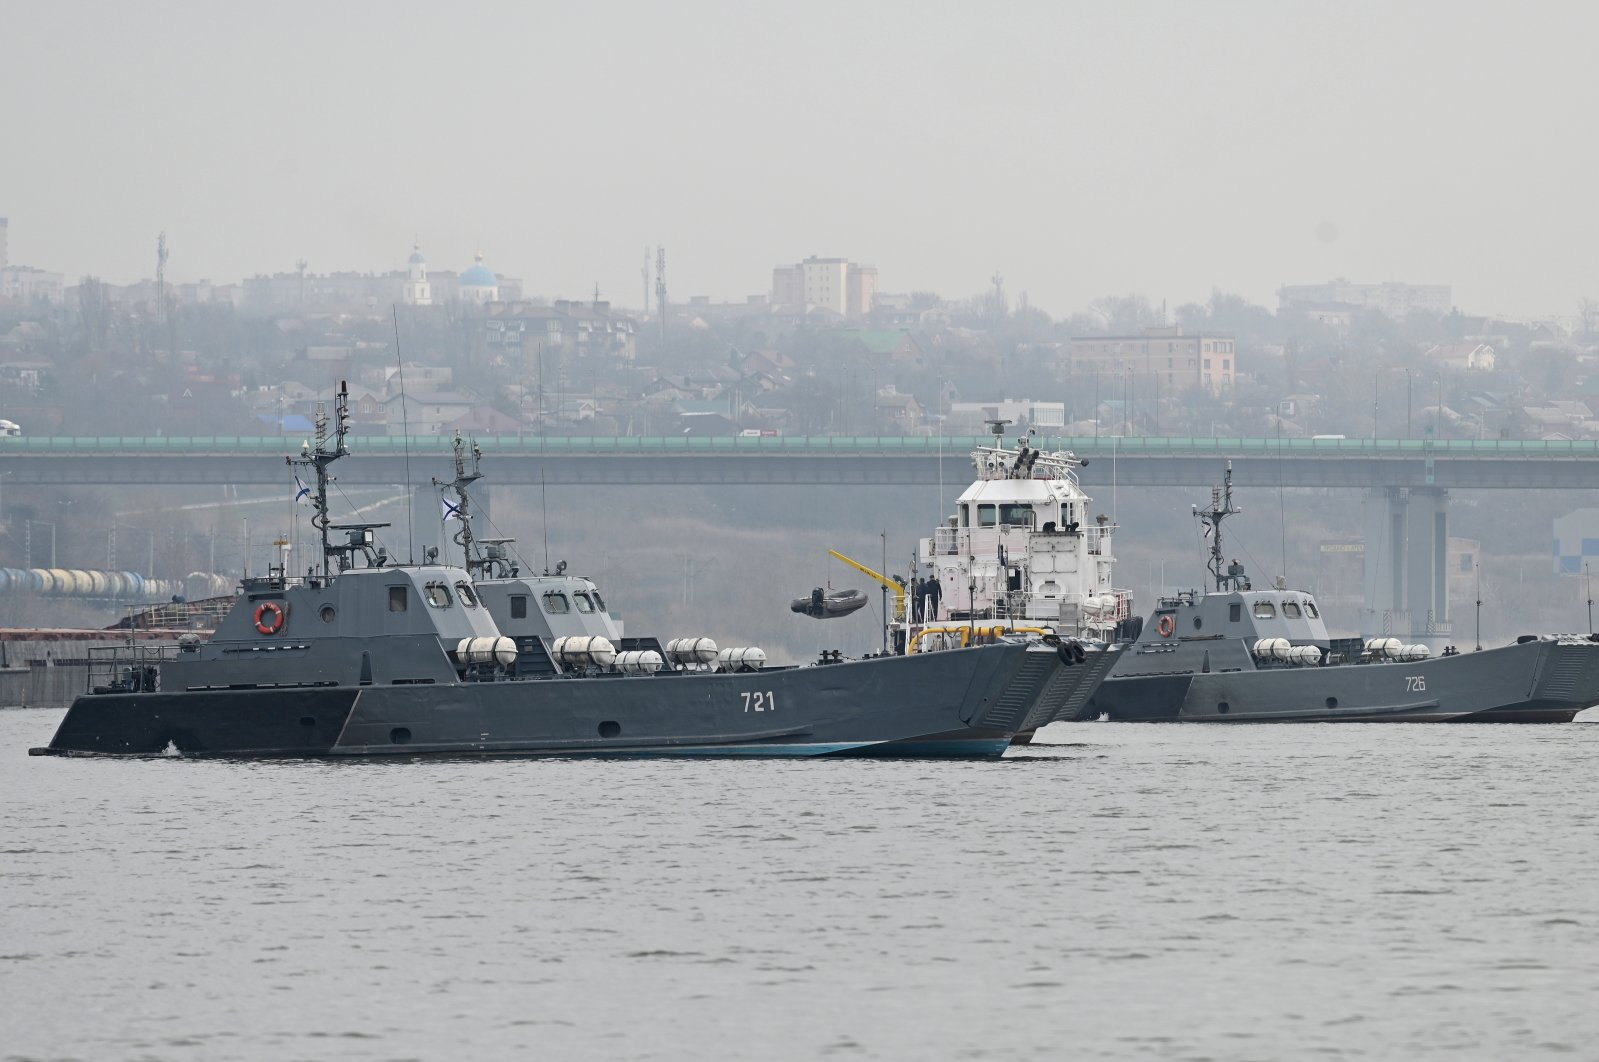 Landing crafts of the Russian Navy's Caspian Flotilla are pictured on the Don River during the inter-fleet move from the Caspian Sea to the Black Sea, on the outskirts of Rostov-on-Don, Russia, April 12, 2021. (Reuters Photo)